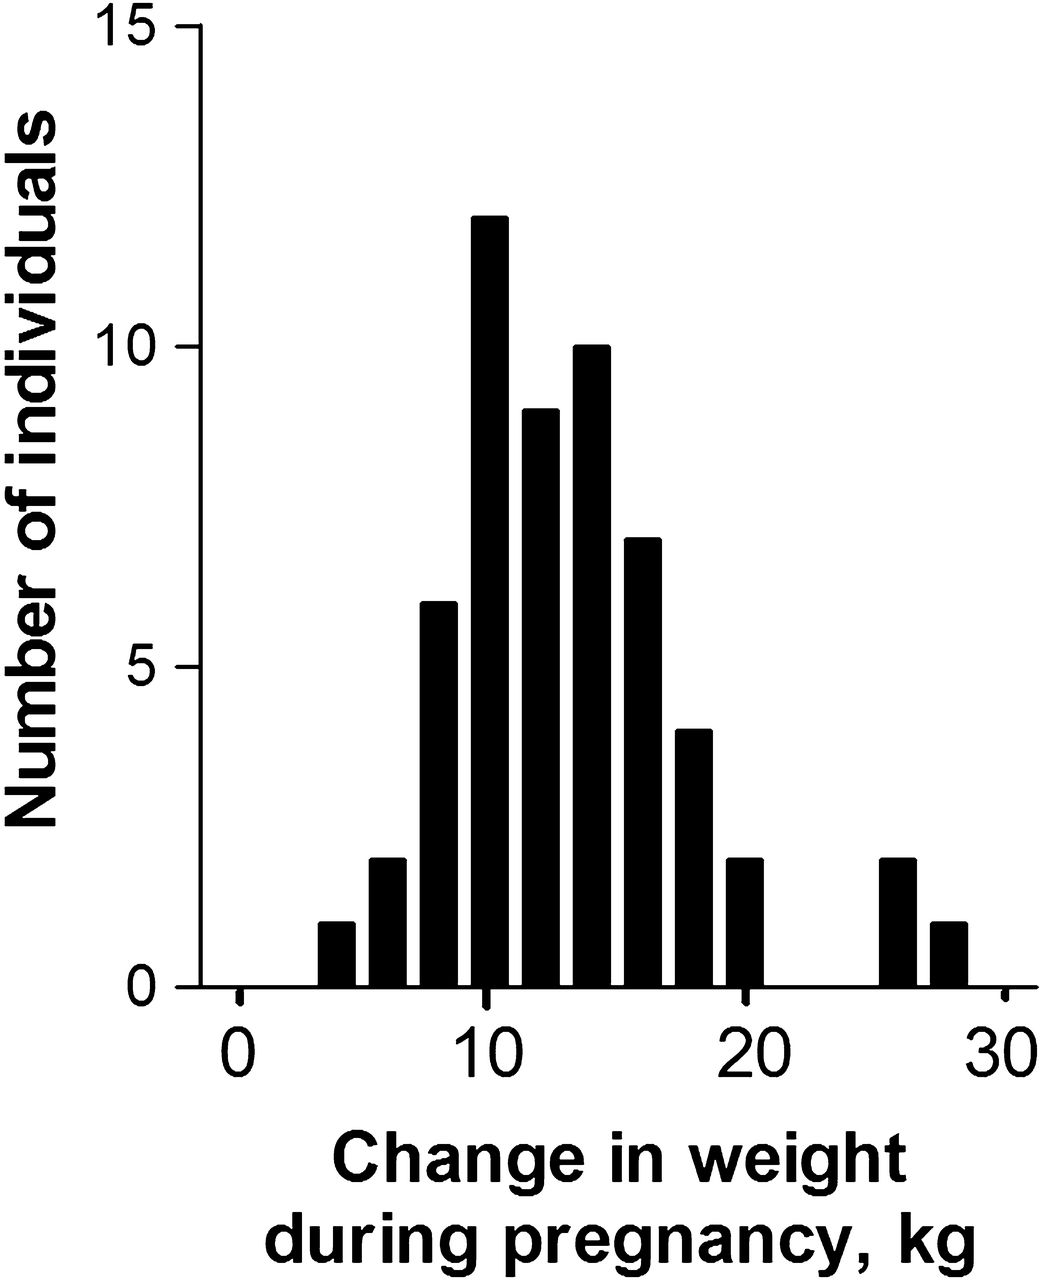 The relationship between weight gain during pregnancy and